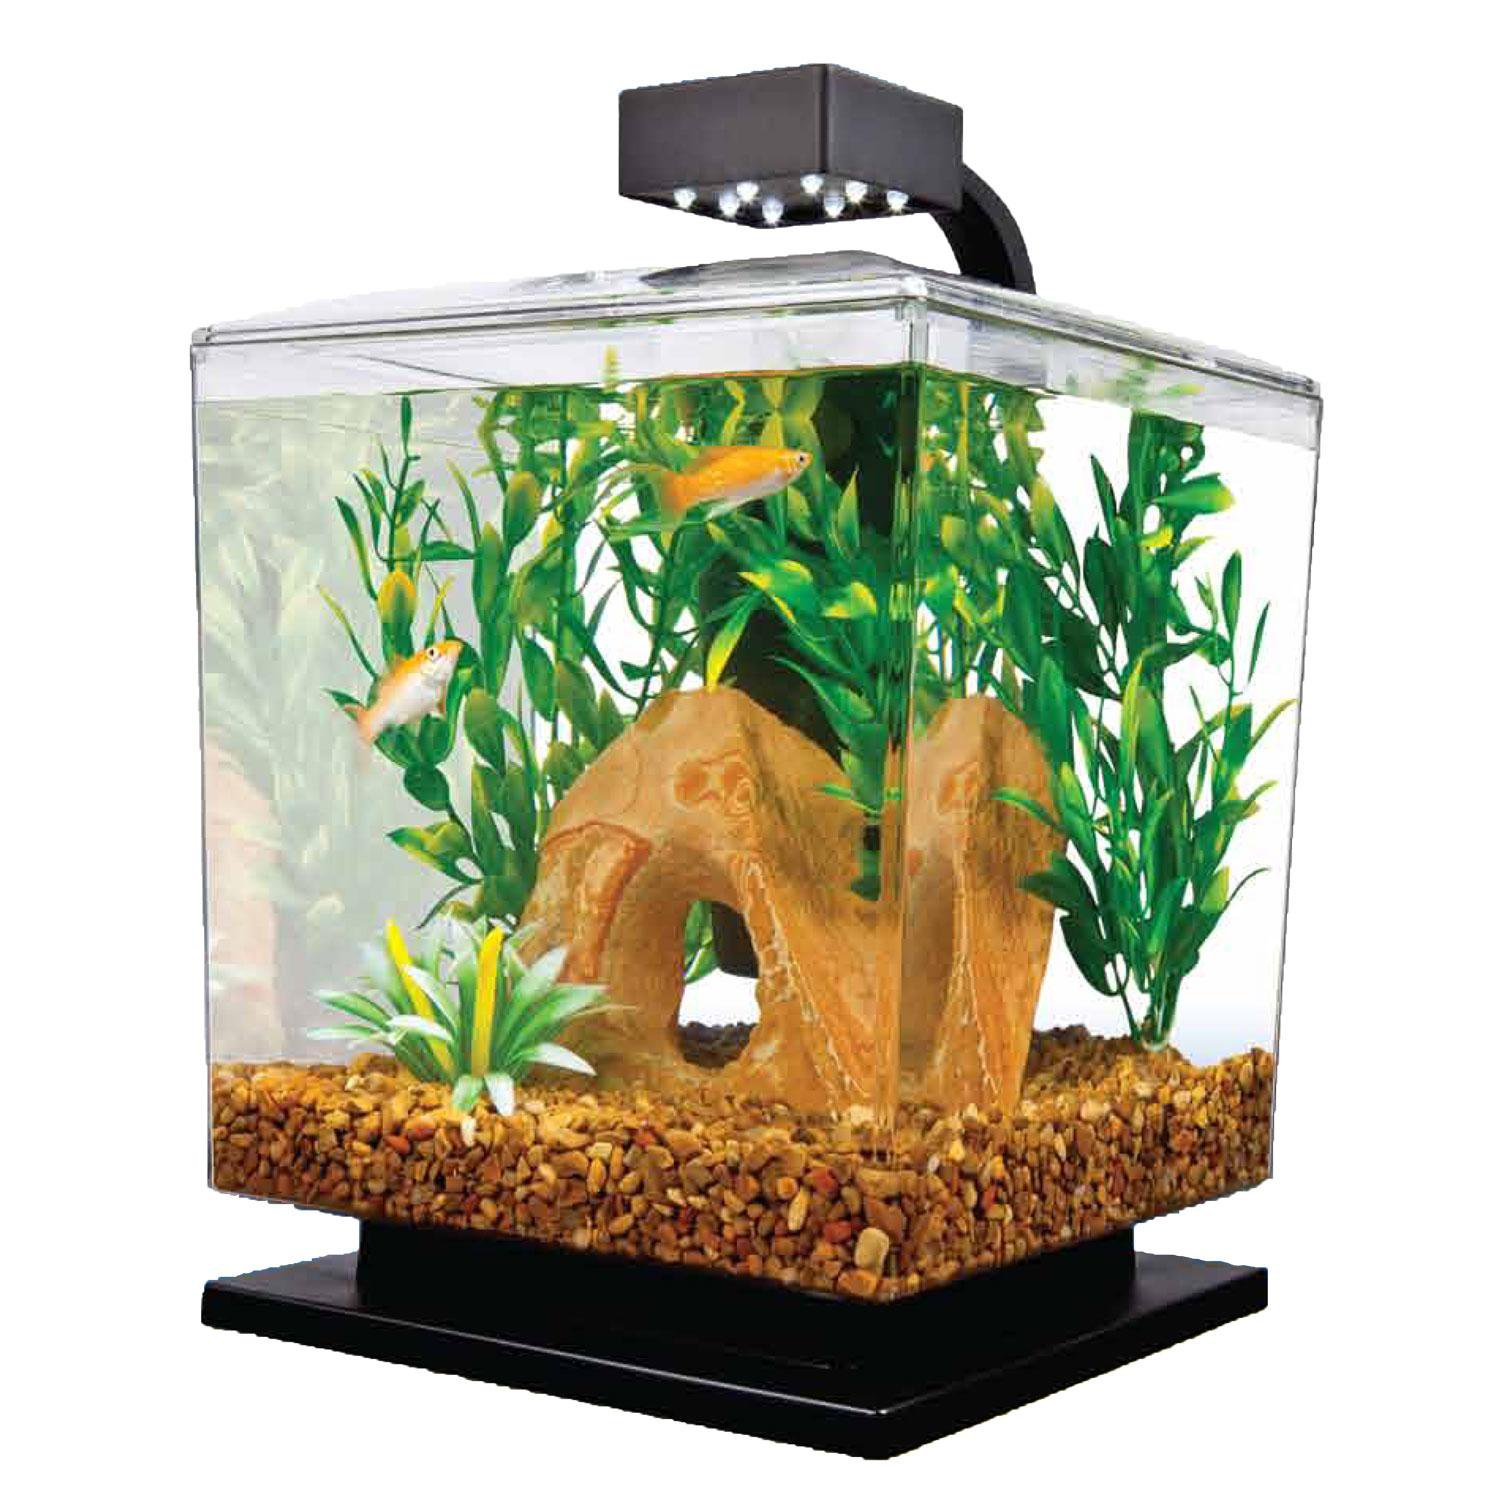 Aquarium fish tank starter kit - Tetra 1 5 Gallon Led Desktop Aquarium Kit